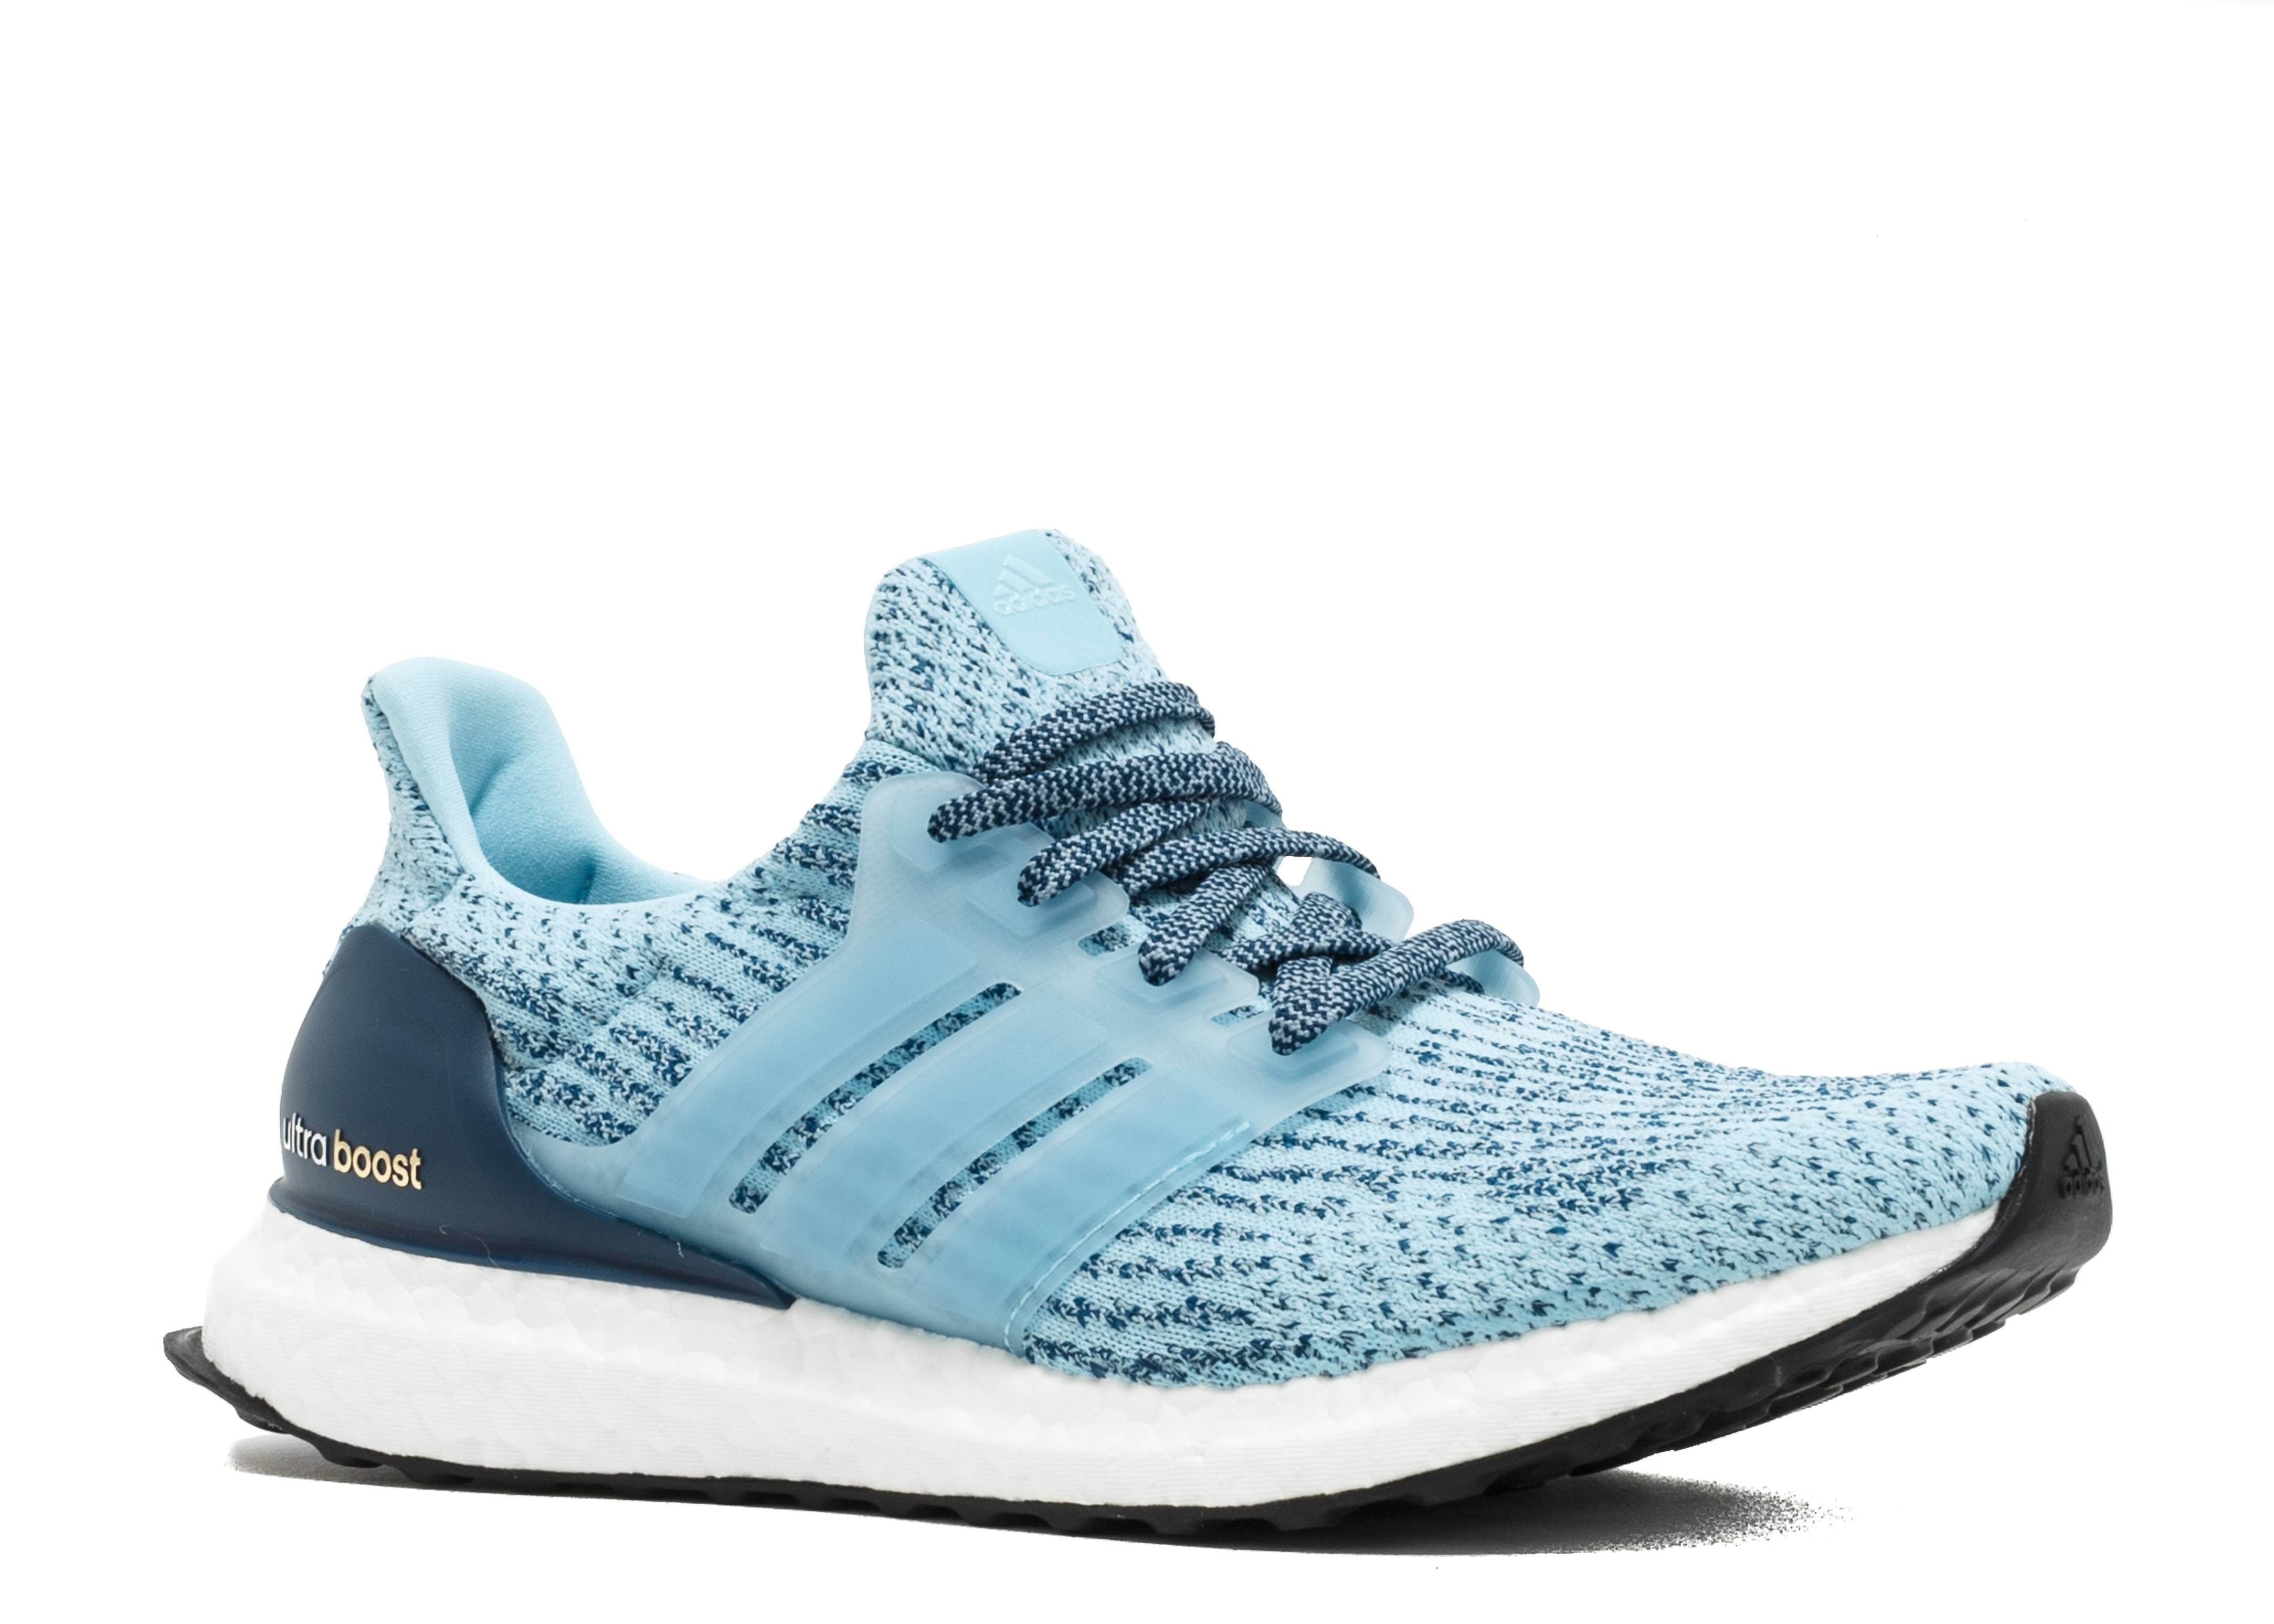 Wmns UltraBoost 3.0 'Icey Blue'